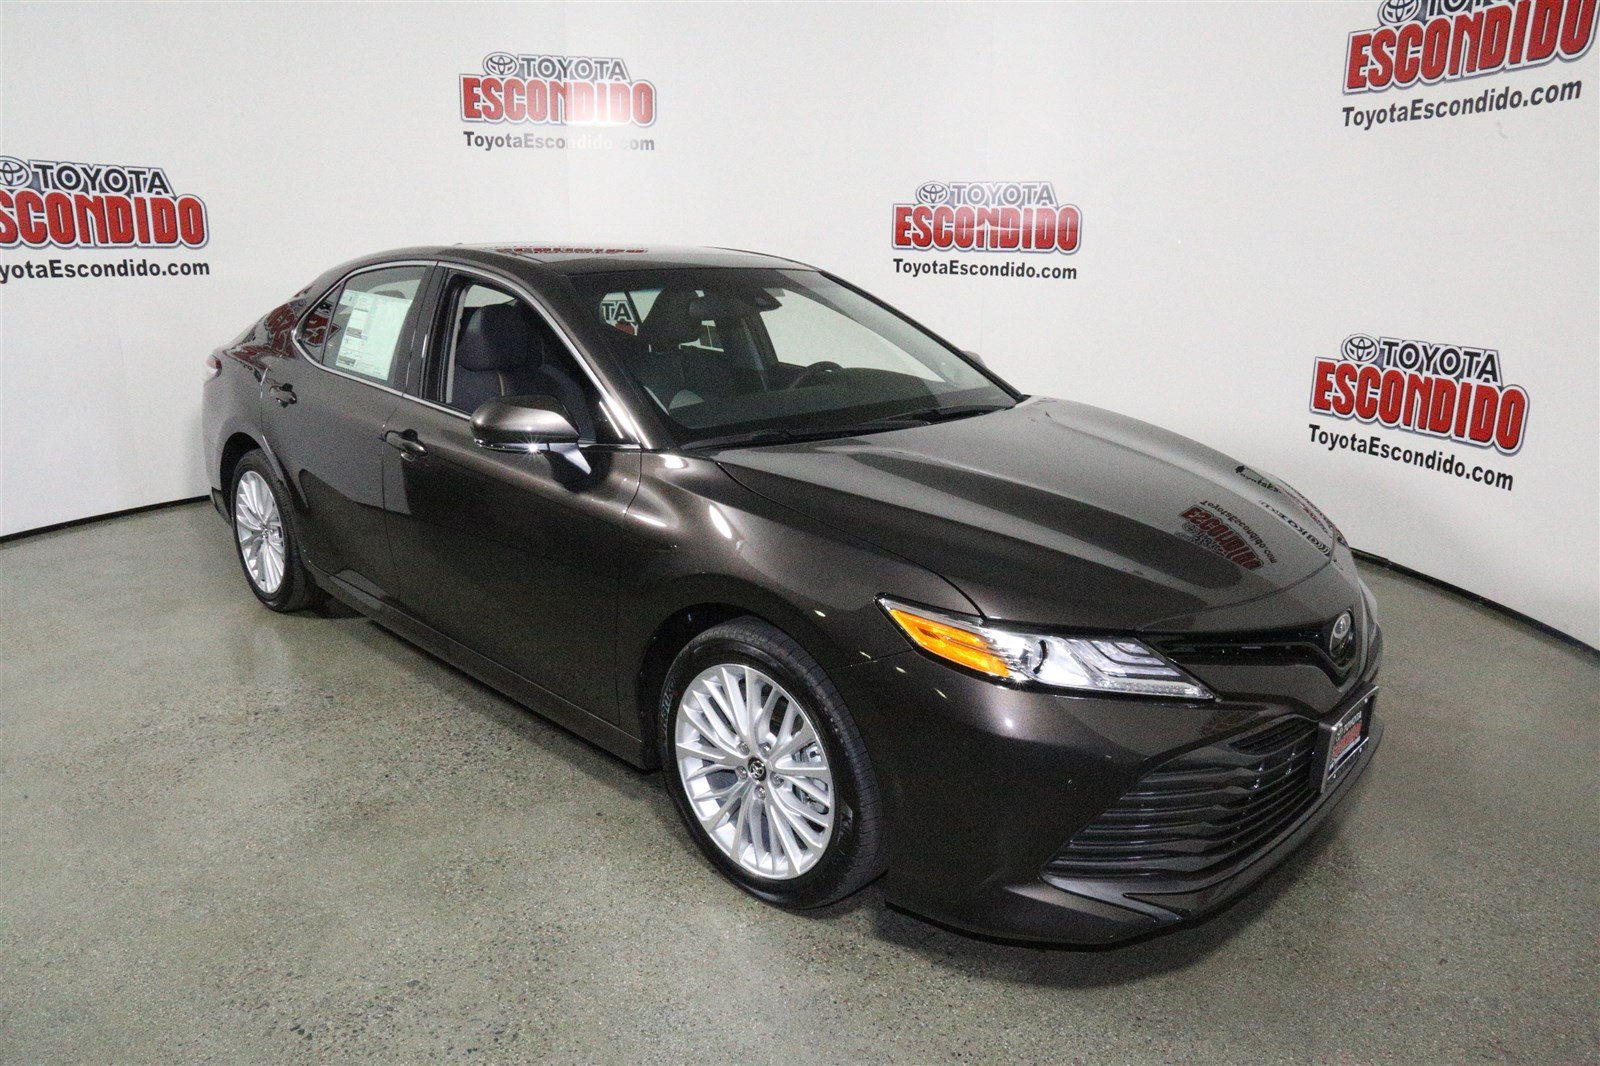 new 2018 toyota camry xle v6 4dr car in escondido 1015242 toyota escondido. Black Bedroom Furniture Sets. Home Design Ideas